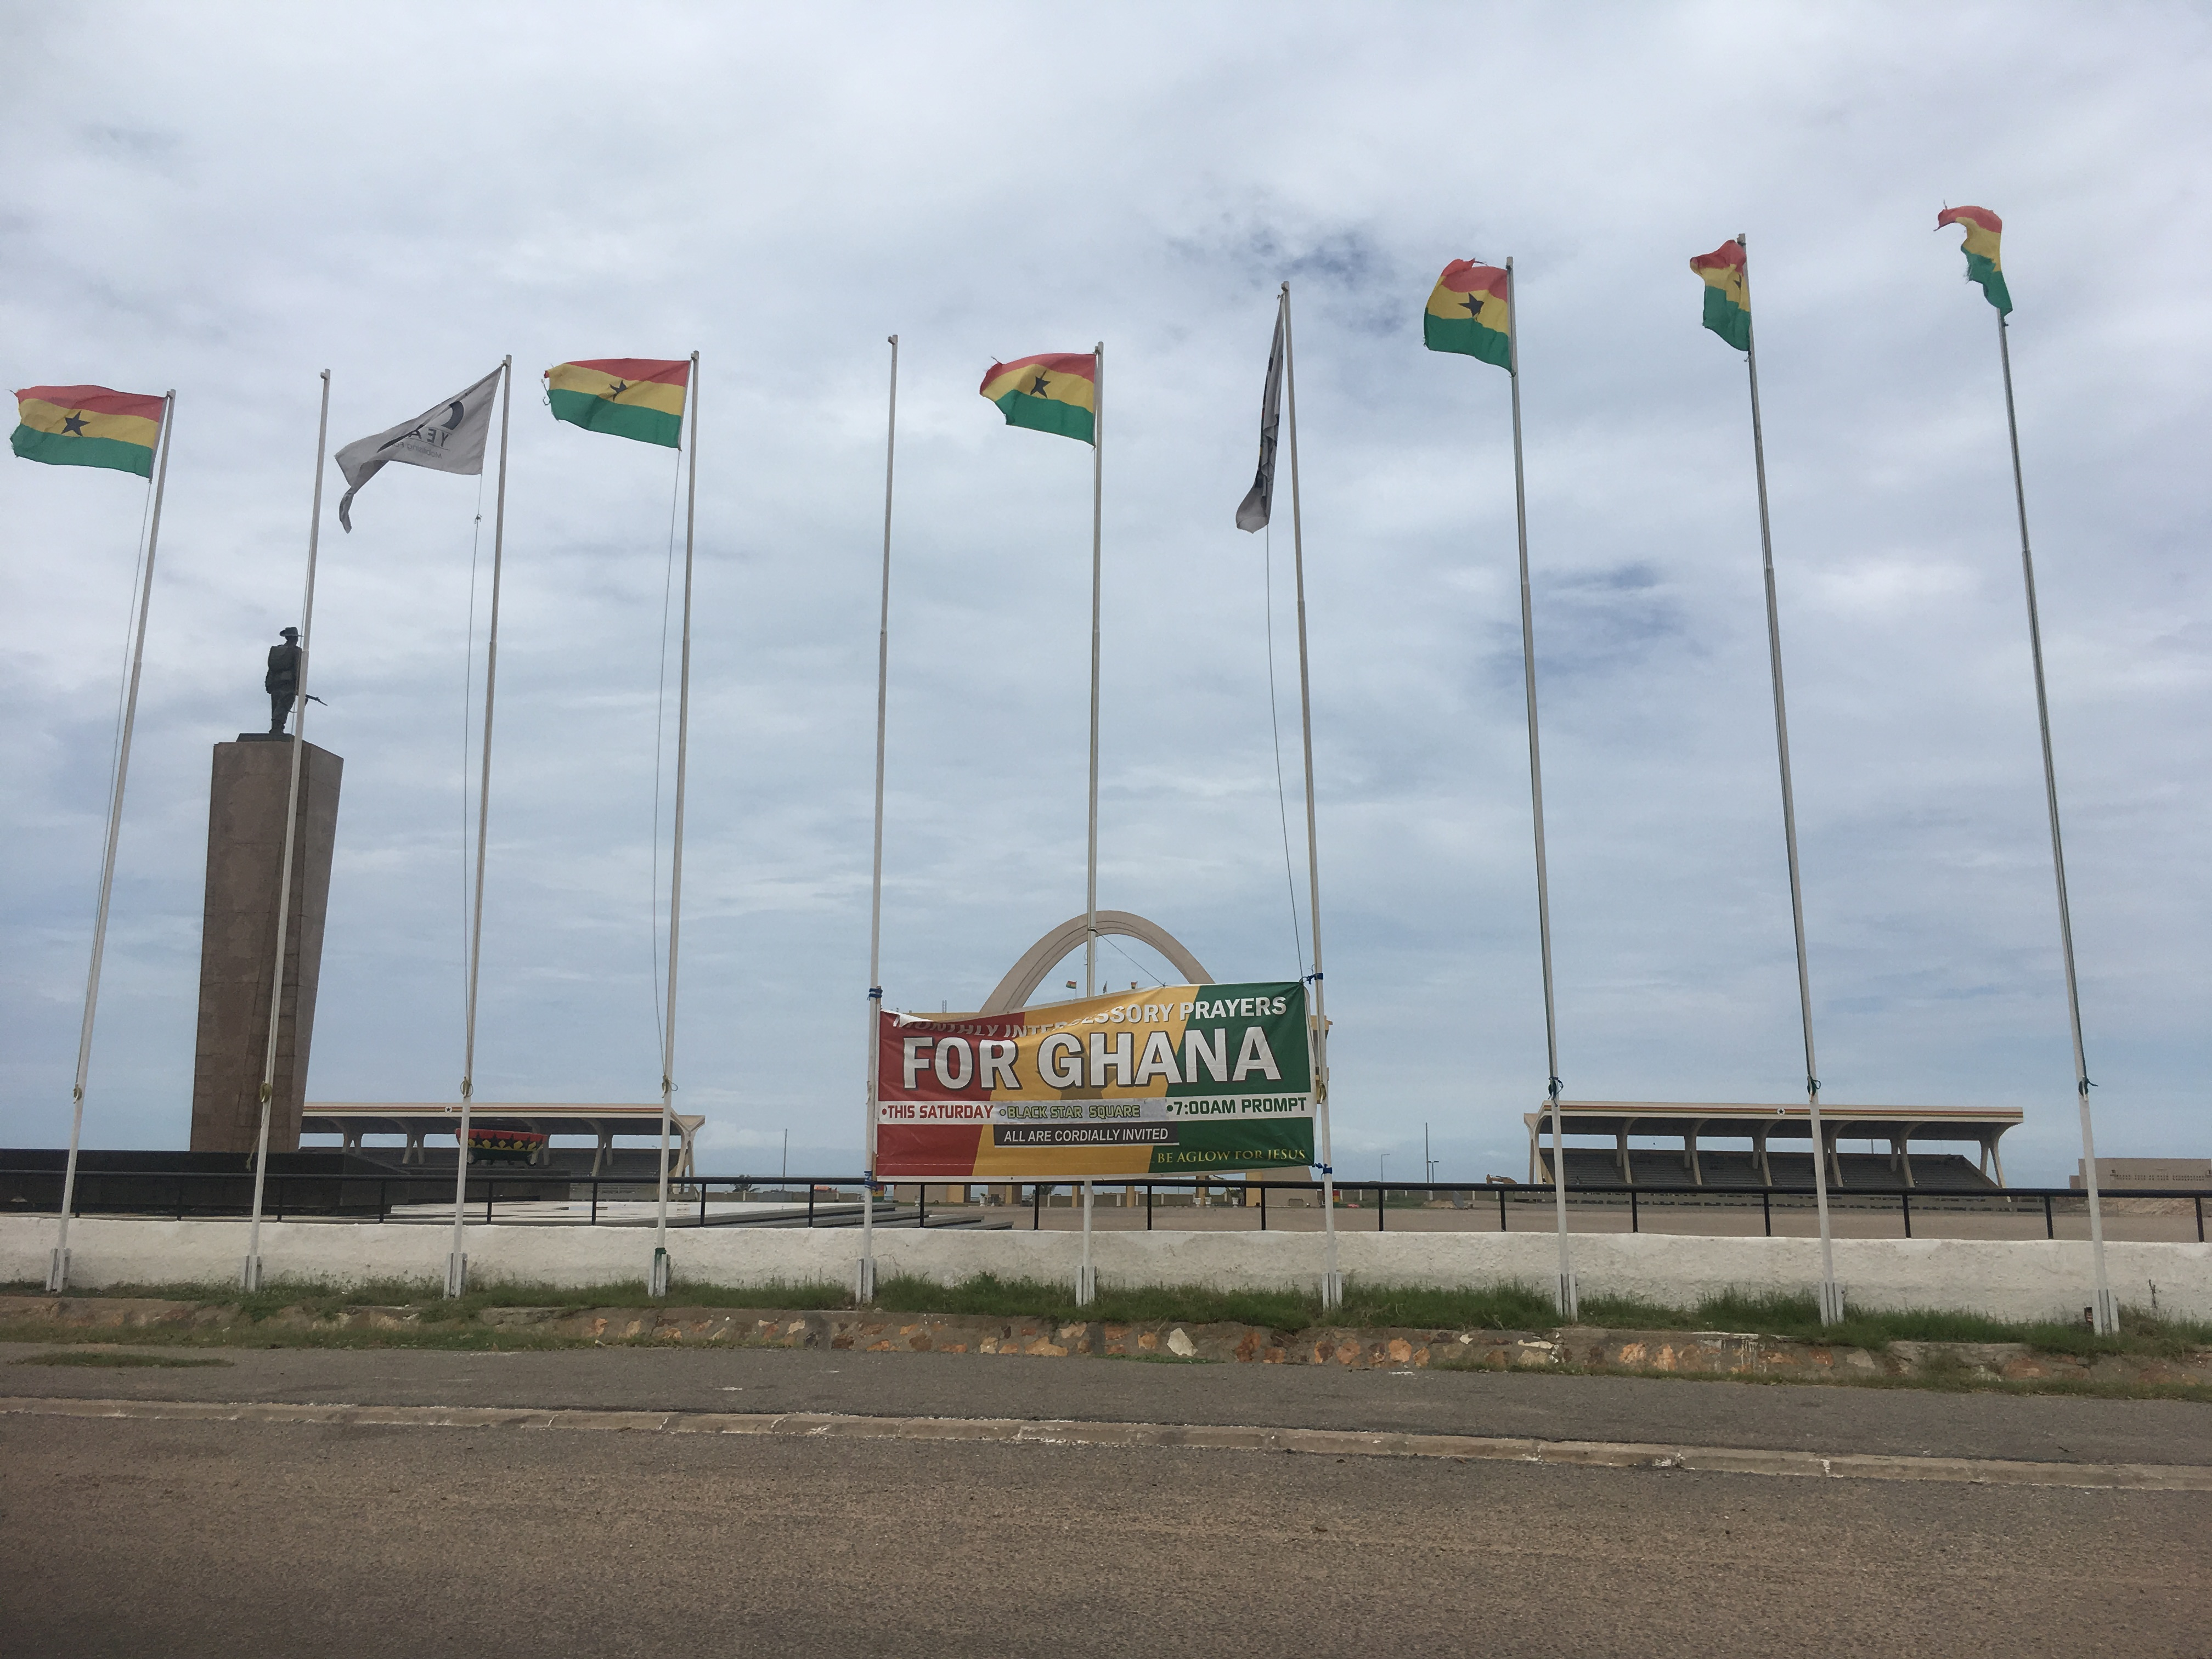 flags and For Ghana banner